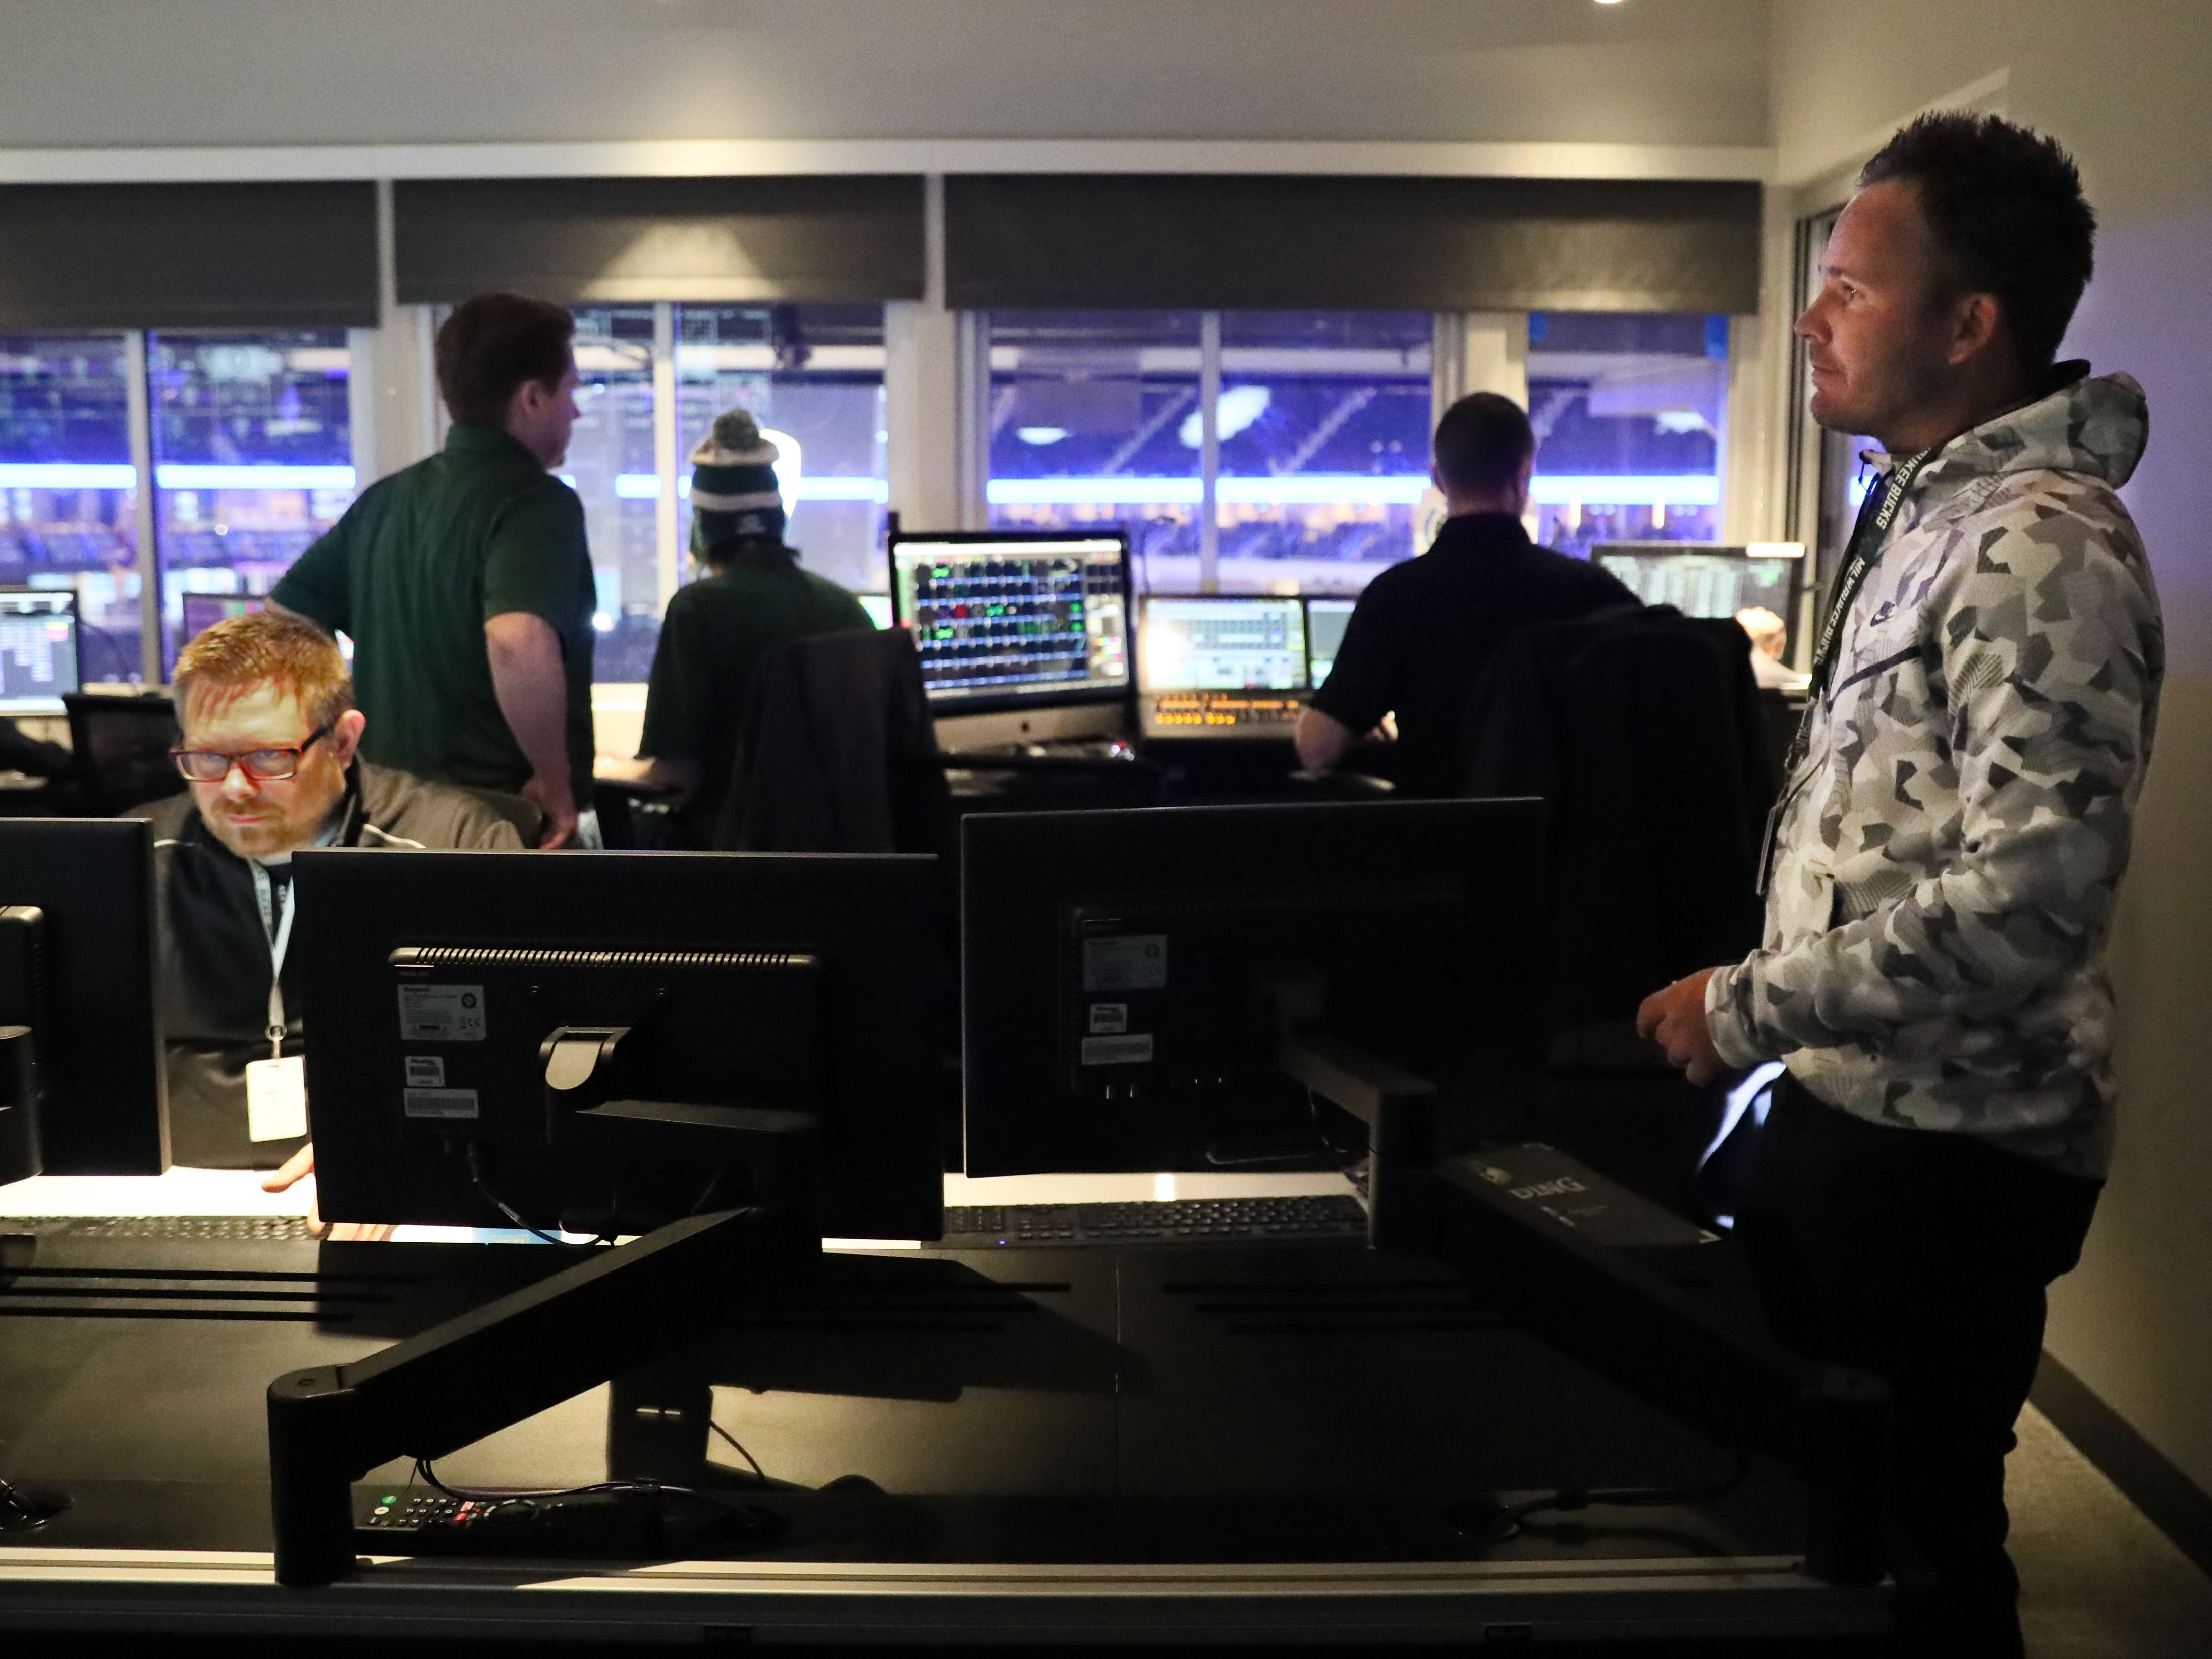 Johnny Watson (right), the Milwaukee Bucks executive that in charge of all in-arena activities during games, meets before the game with the control room team. The team controls all audio and the scoreboard video.